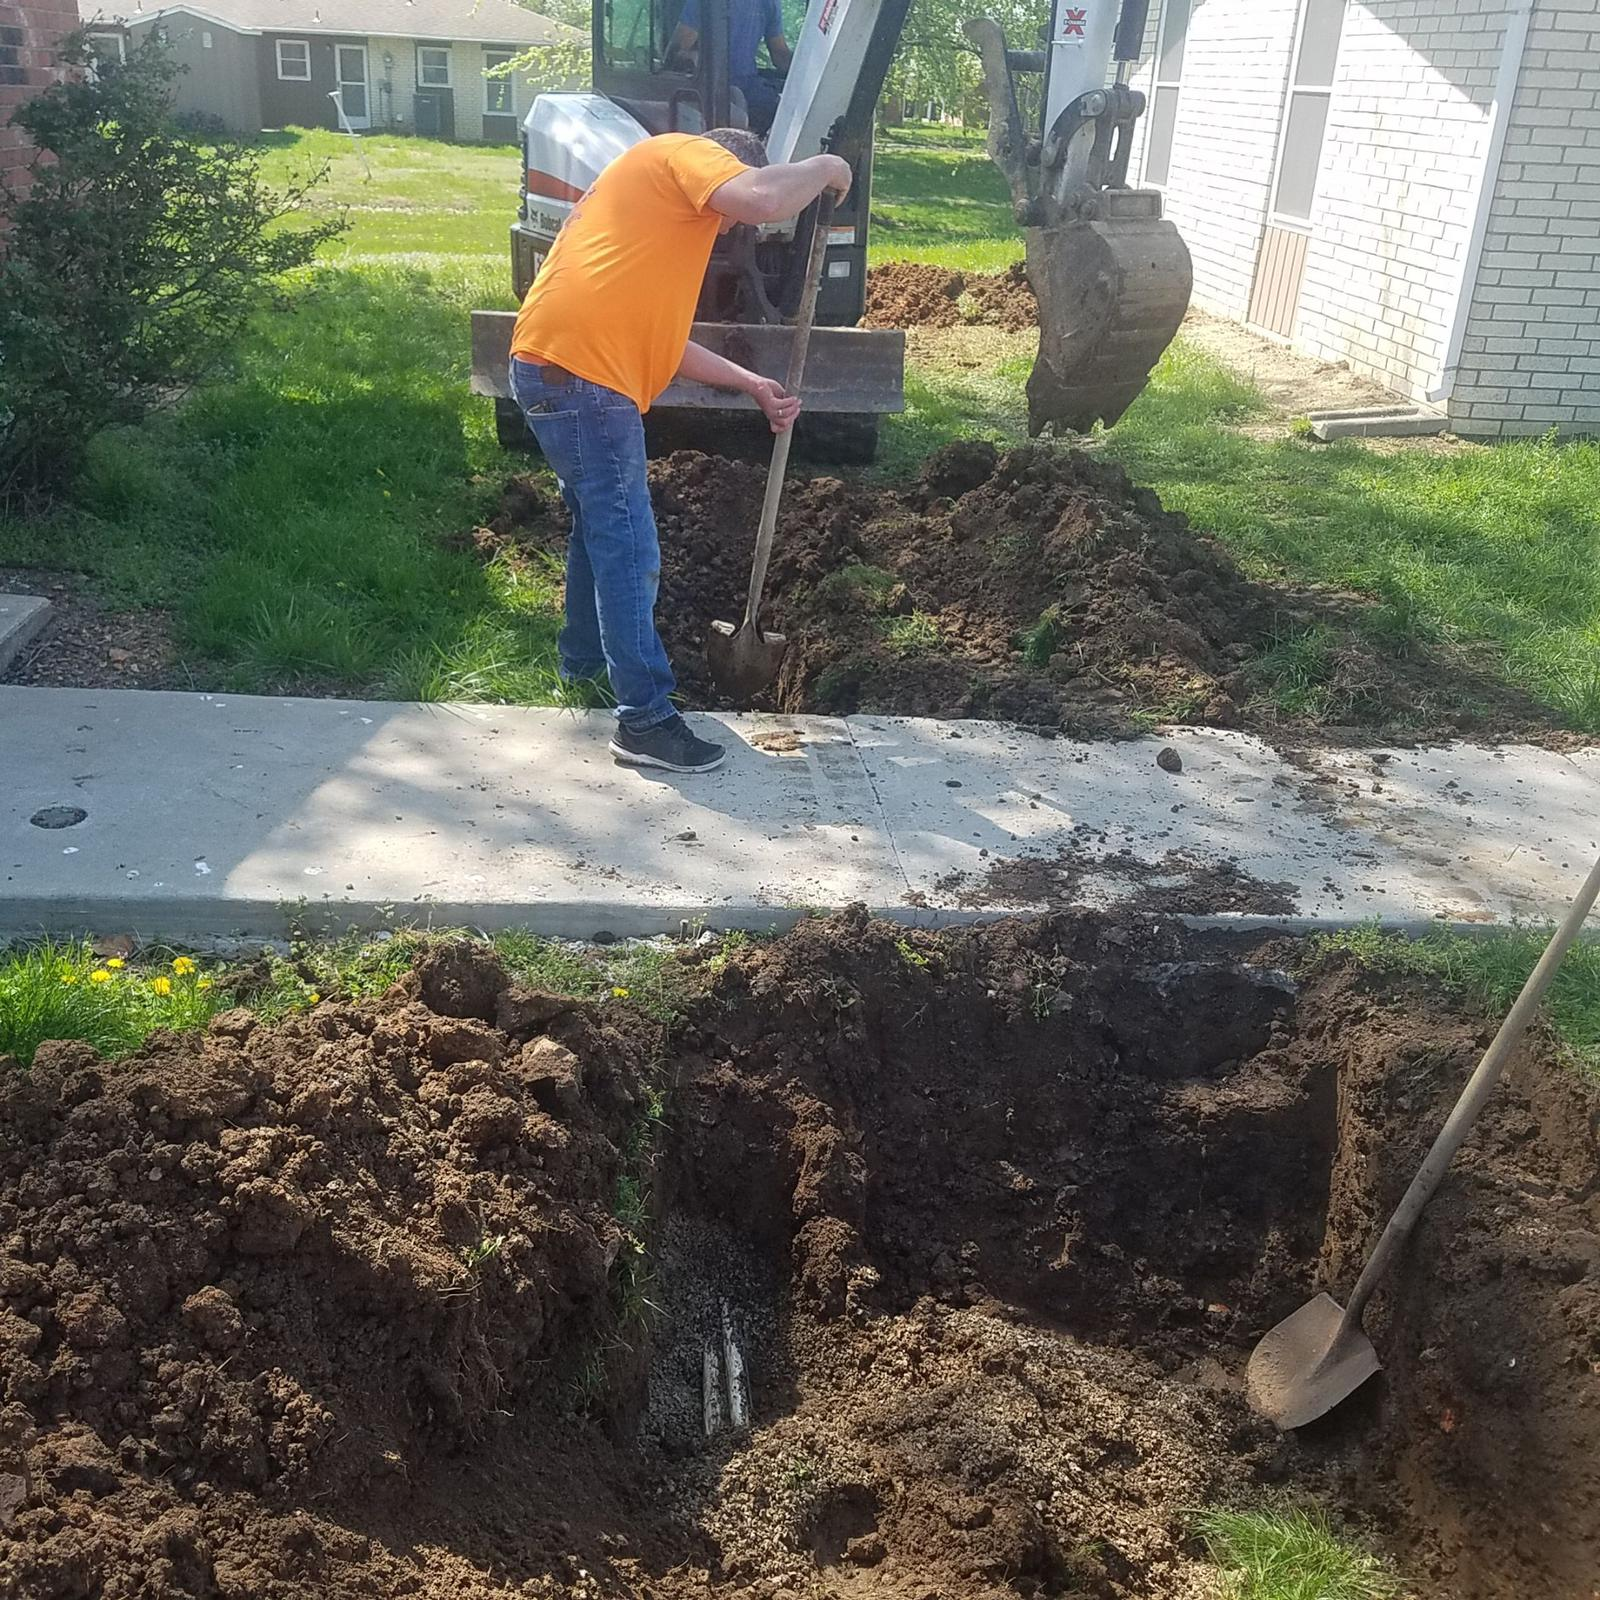 Actually, fixing a leak is the EASY part of plumbing. Finding the leak and getting to it is the hardest part. This pipe happened to burst under a sidewalk. This is randy doing his impression of a backhoe, lol.